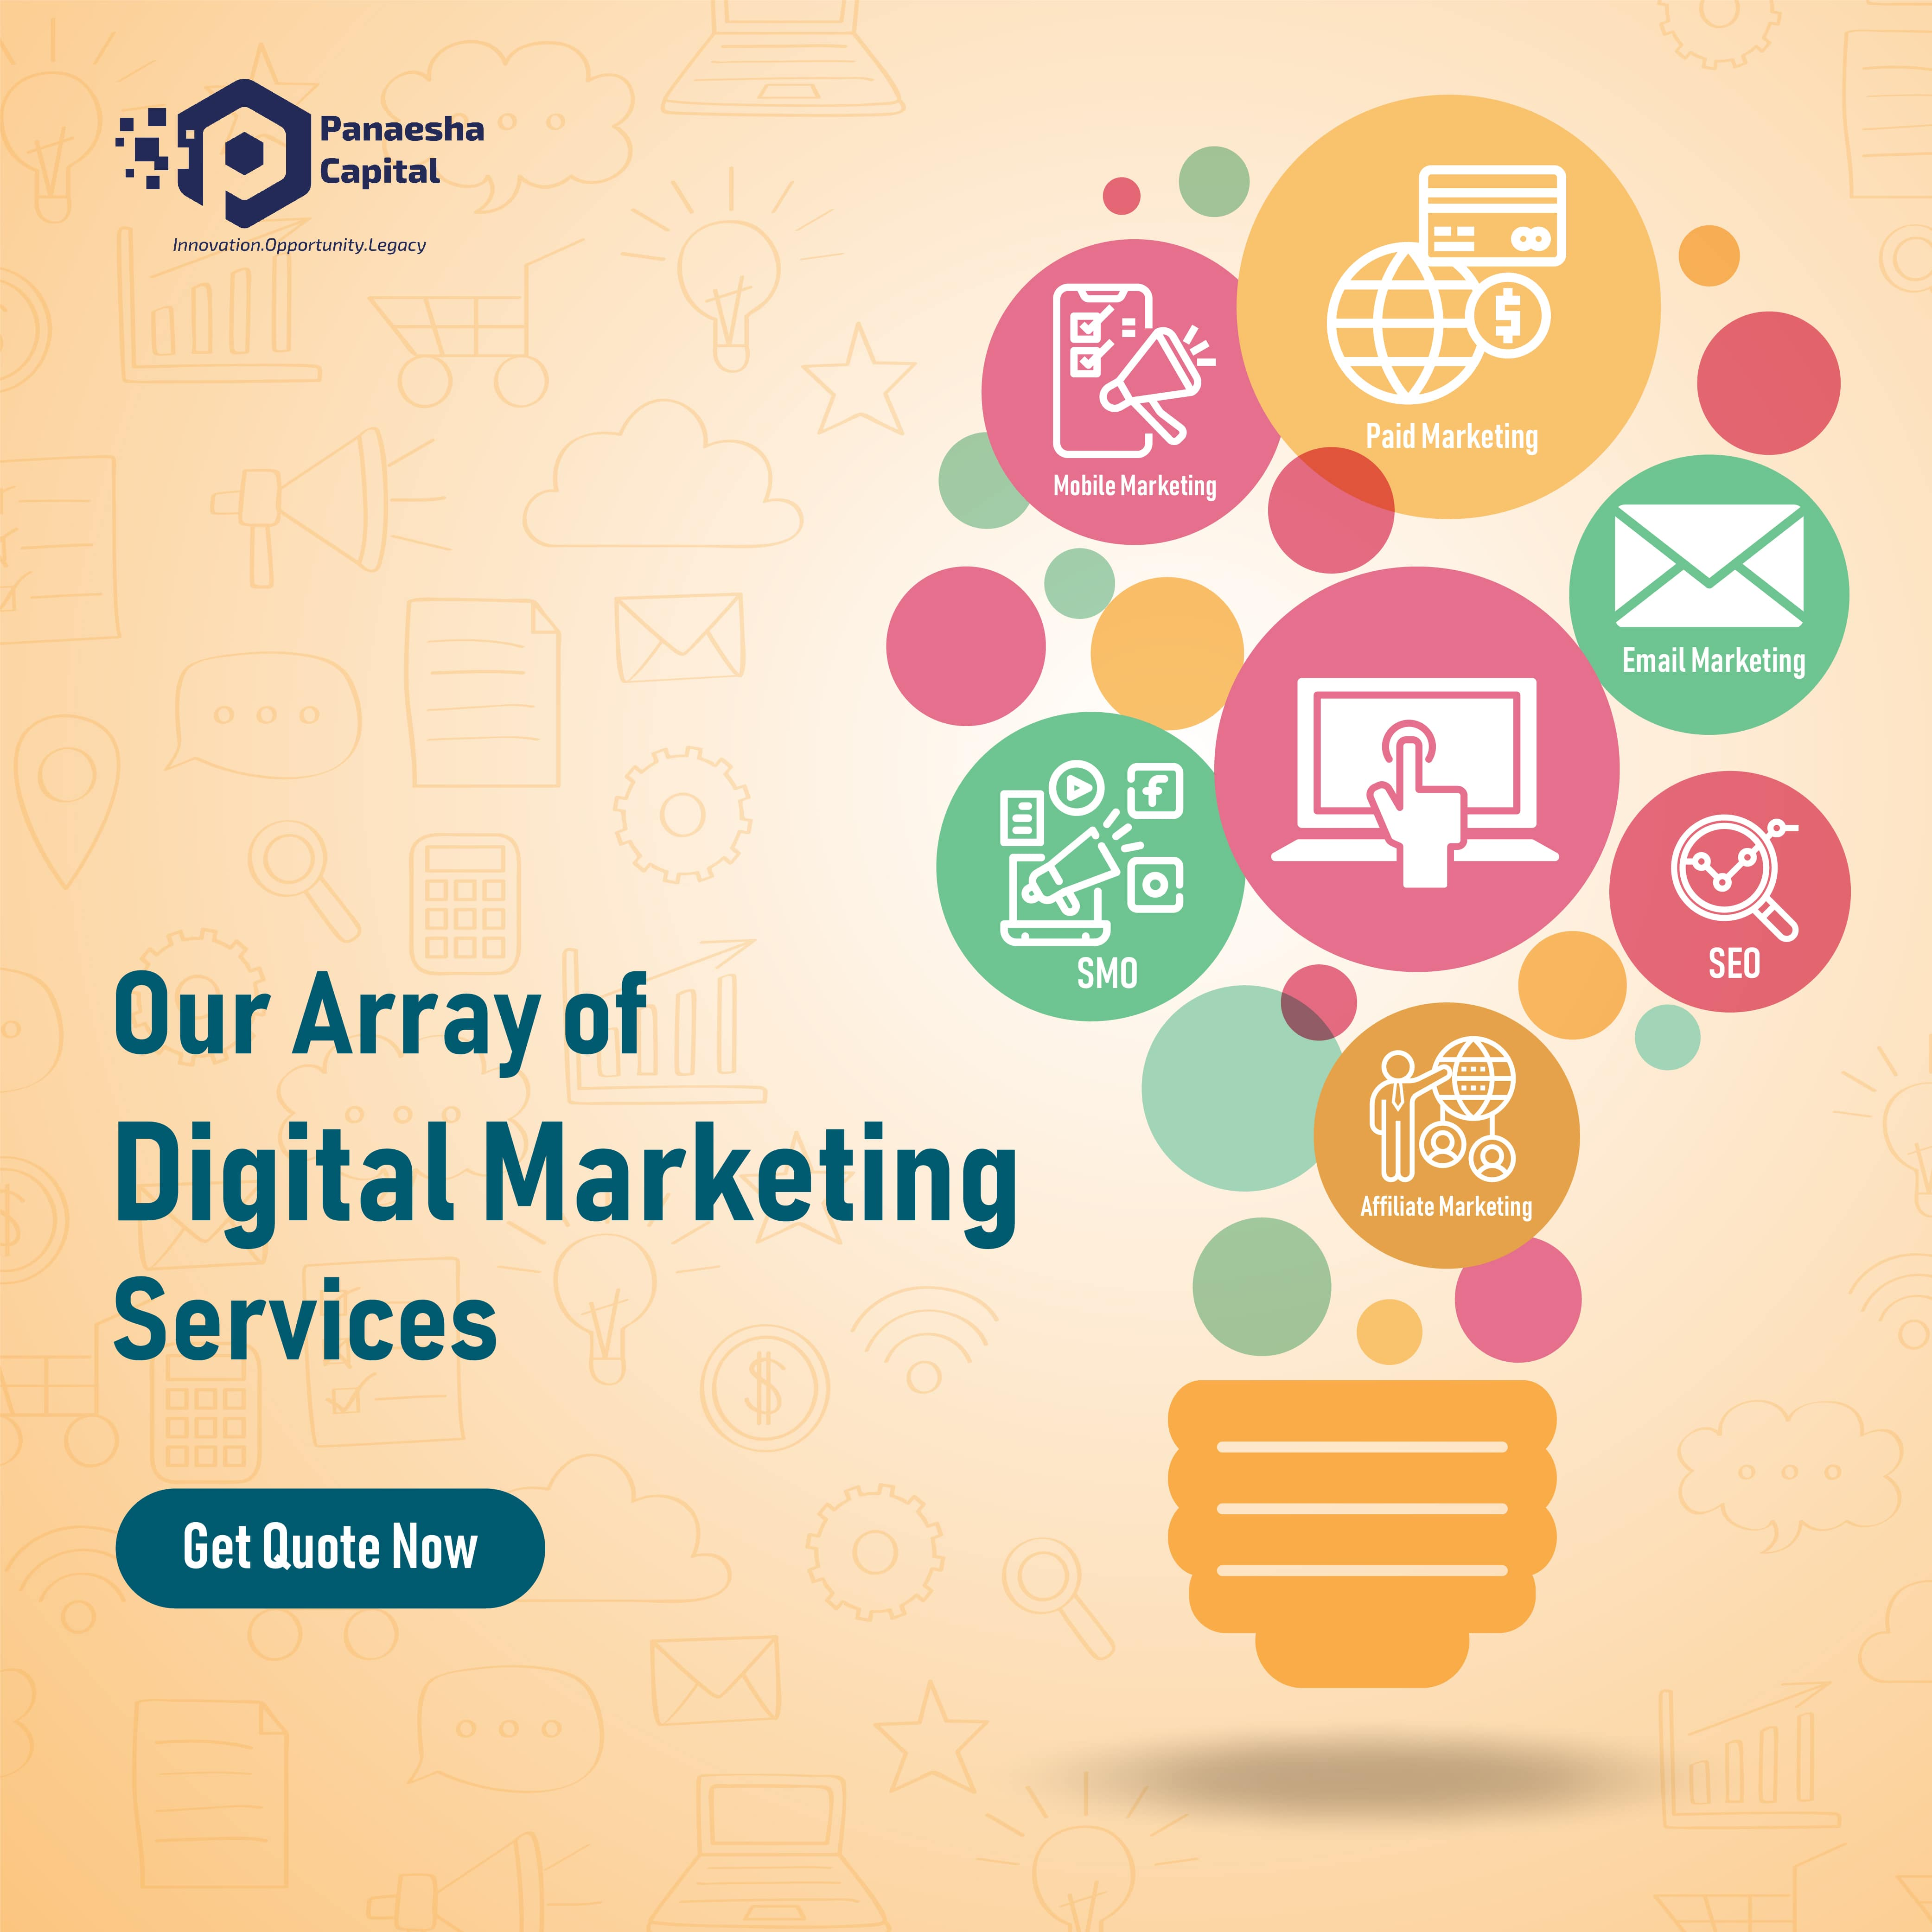 Hire the Best Digital Marketing Agency for your Business